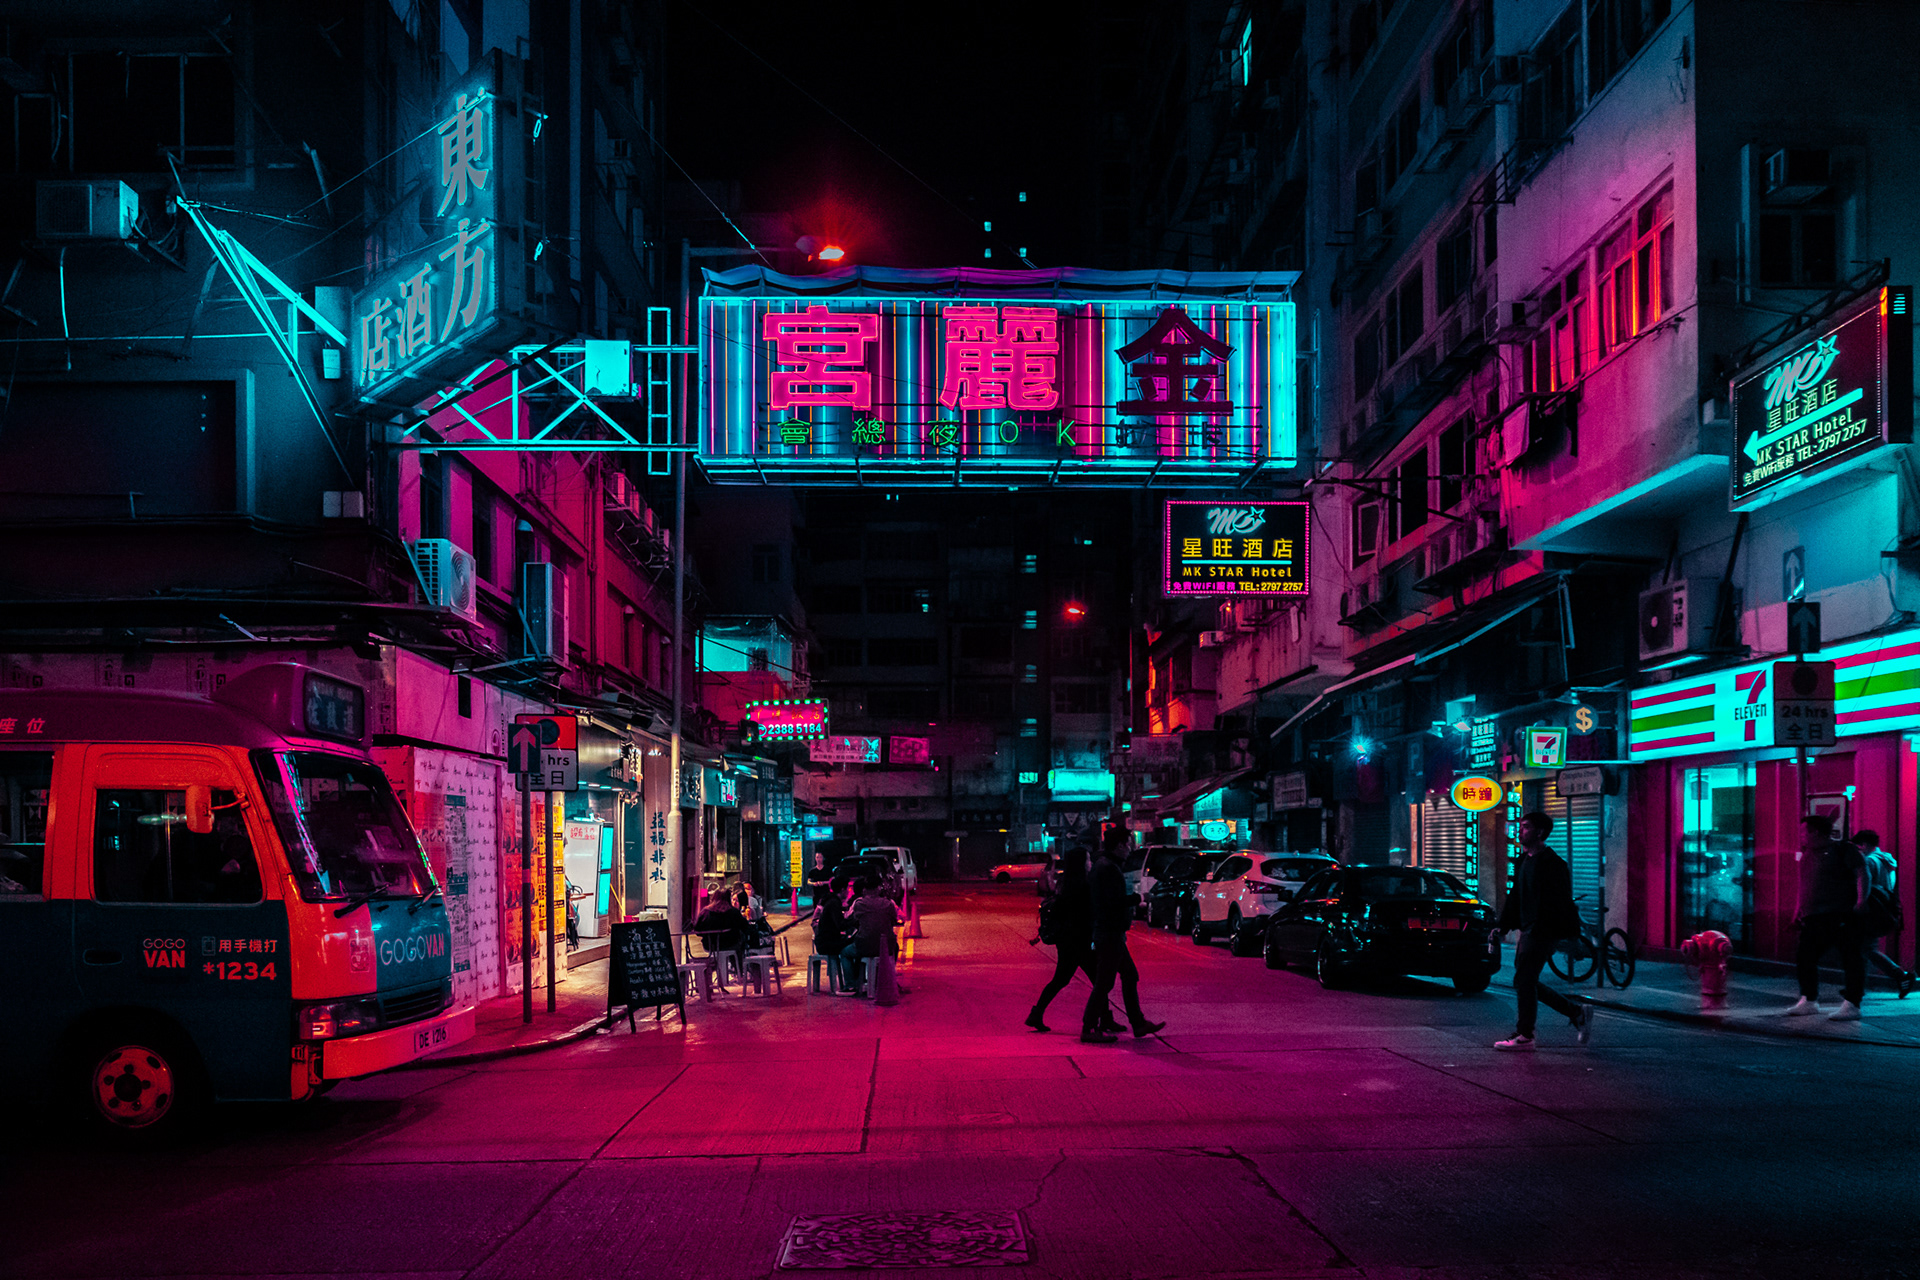 #HONGKONGGLOW: A photography project by Xavier Portela